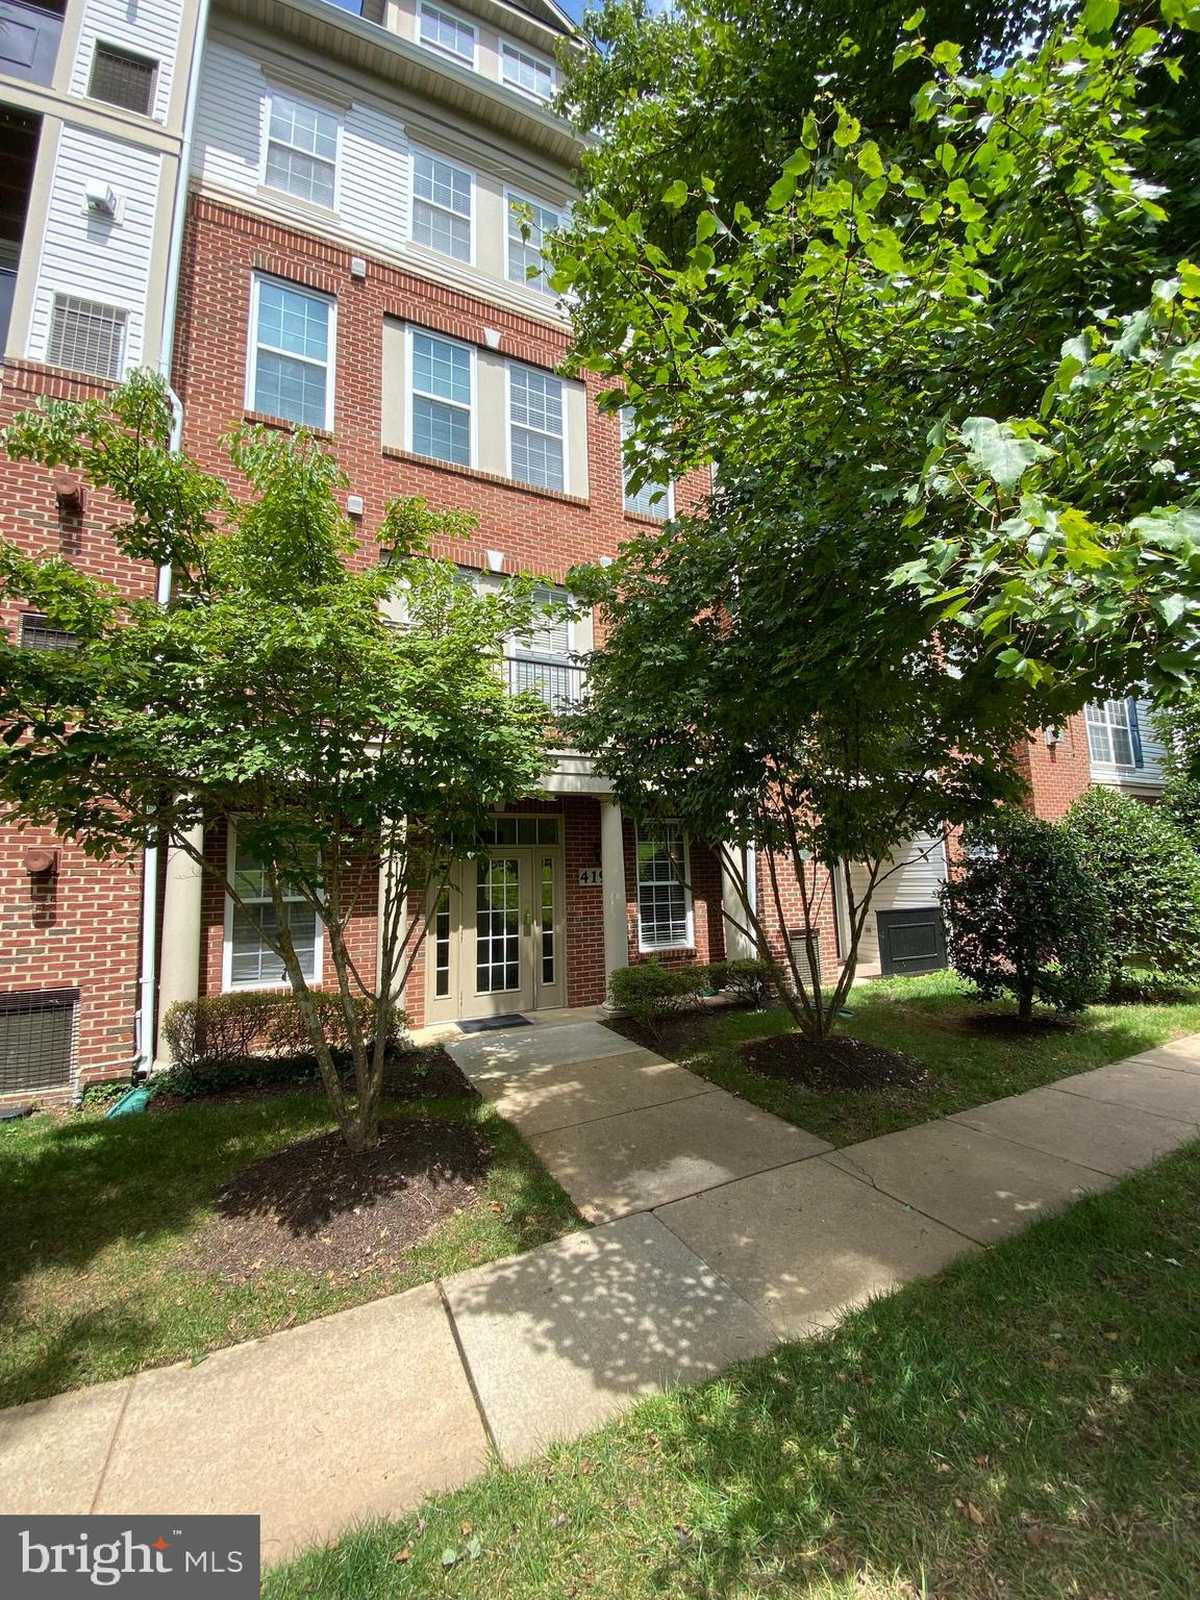 $350,000 - 3Br/2Ba -  for Sale in Courts At Wescott Ridge, Fairfax